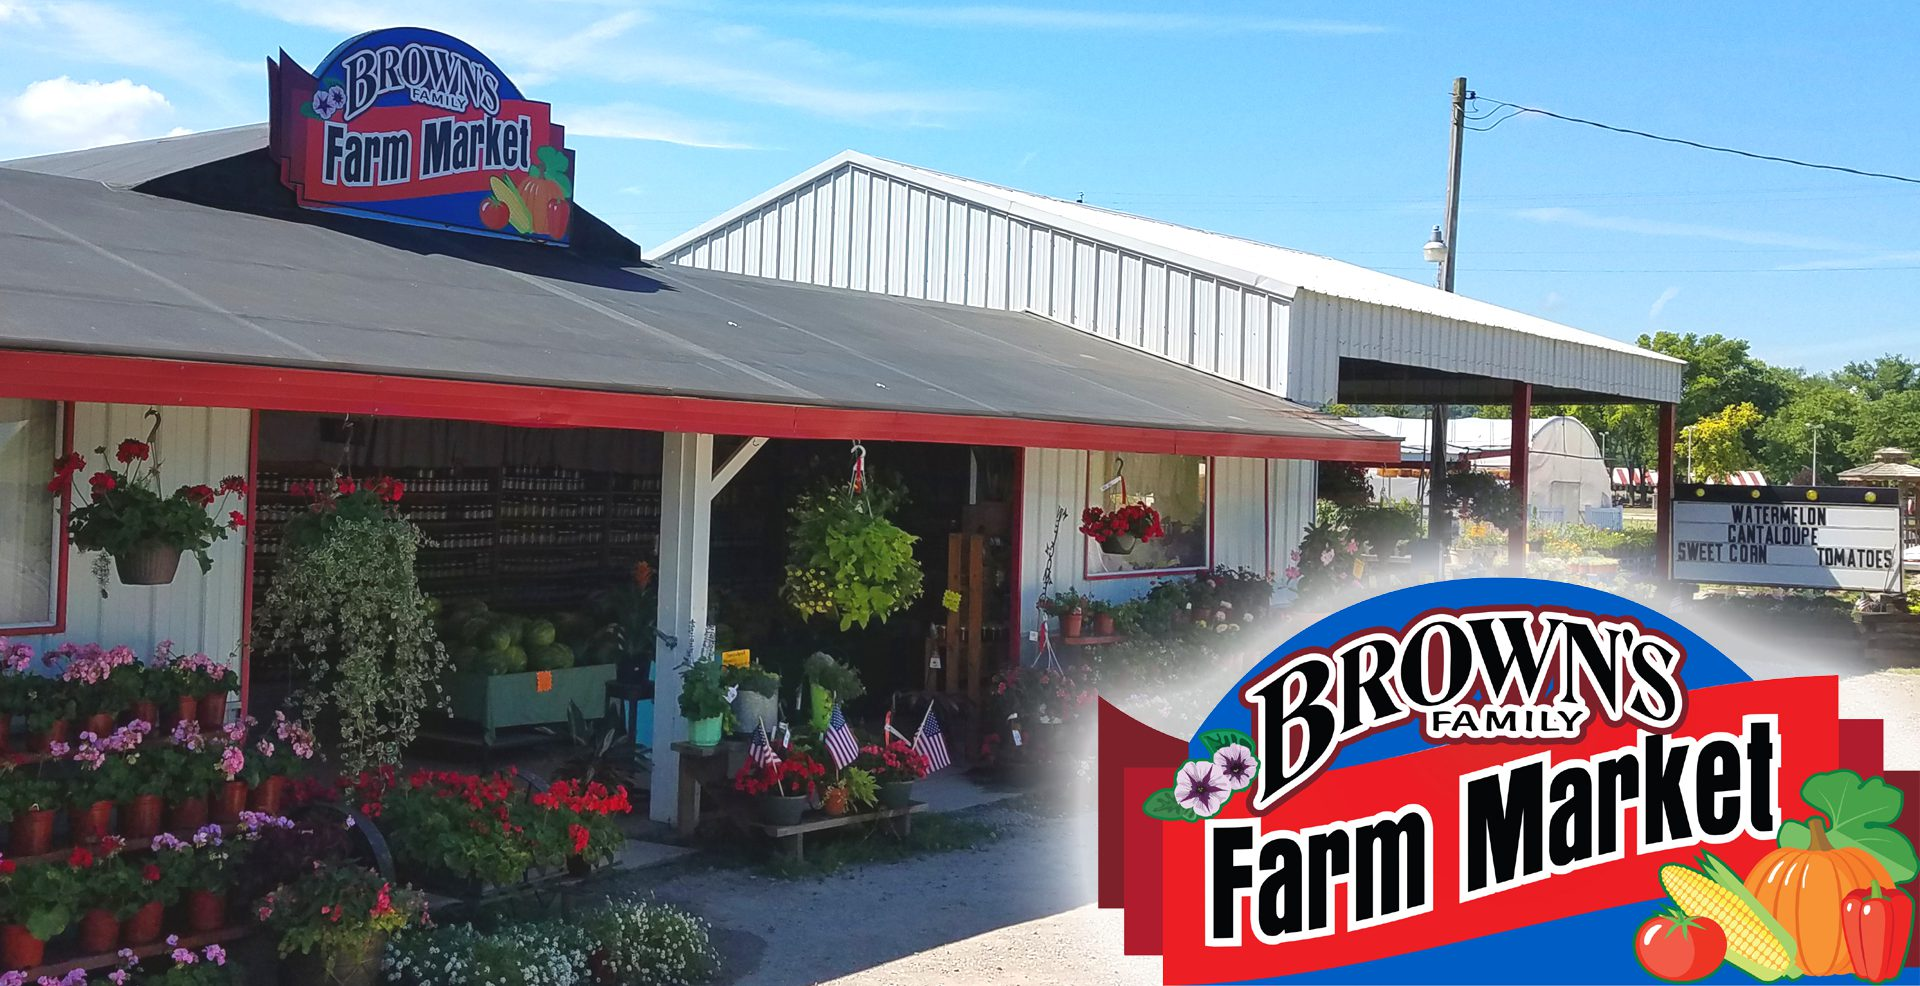 Brown's Family Farm Market